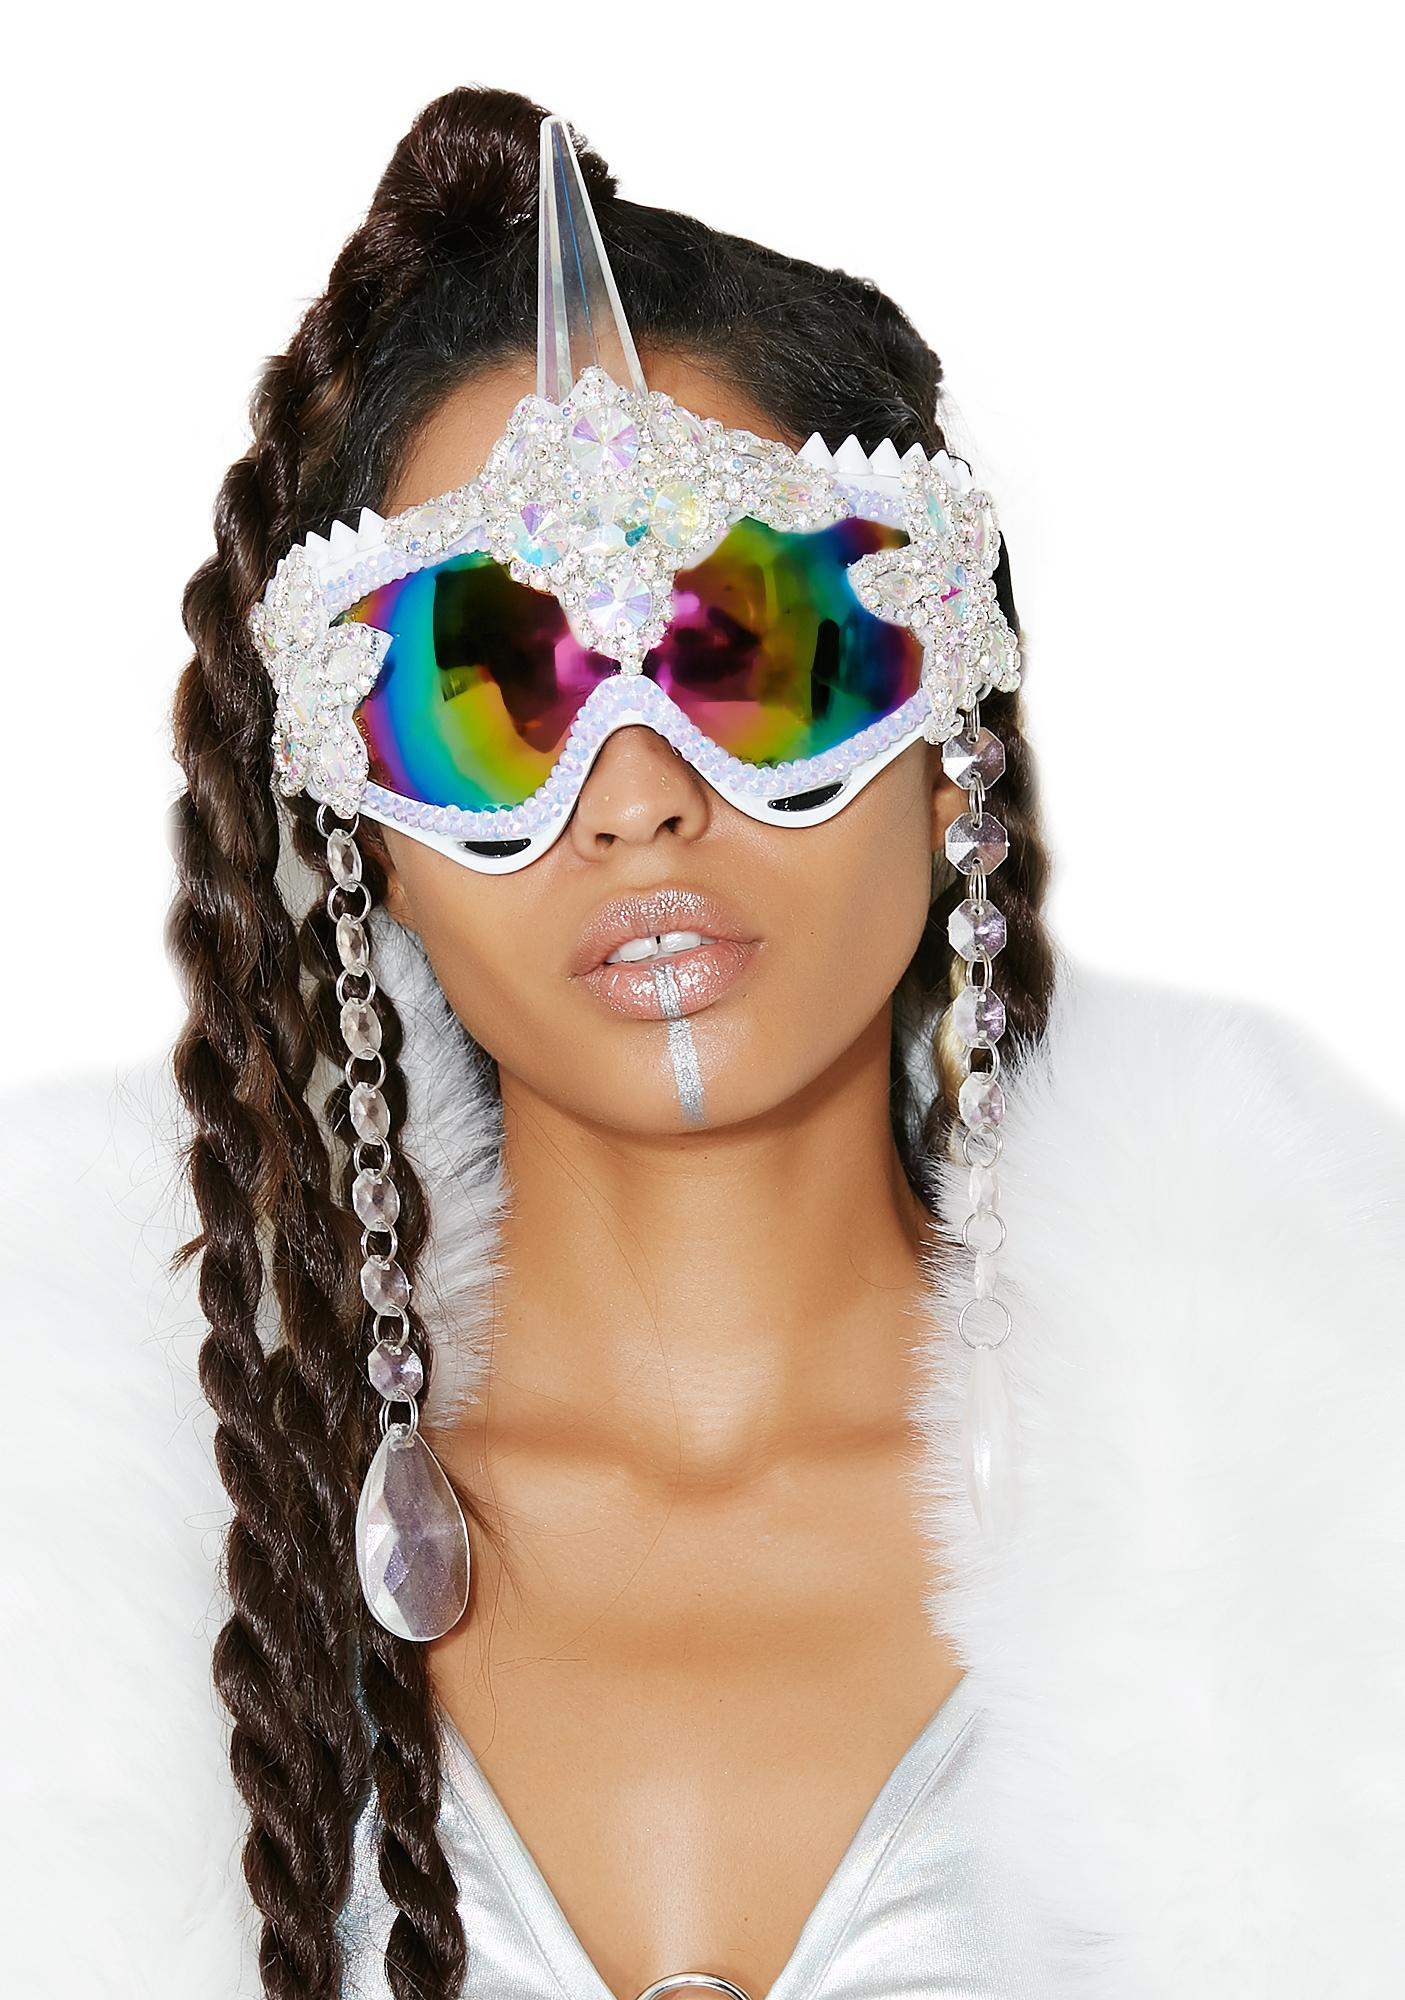 The Lyte Couture Unicorn Goggles